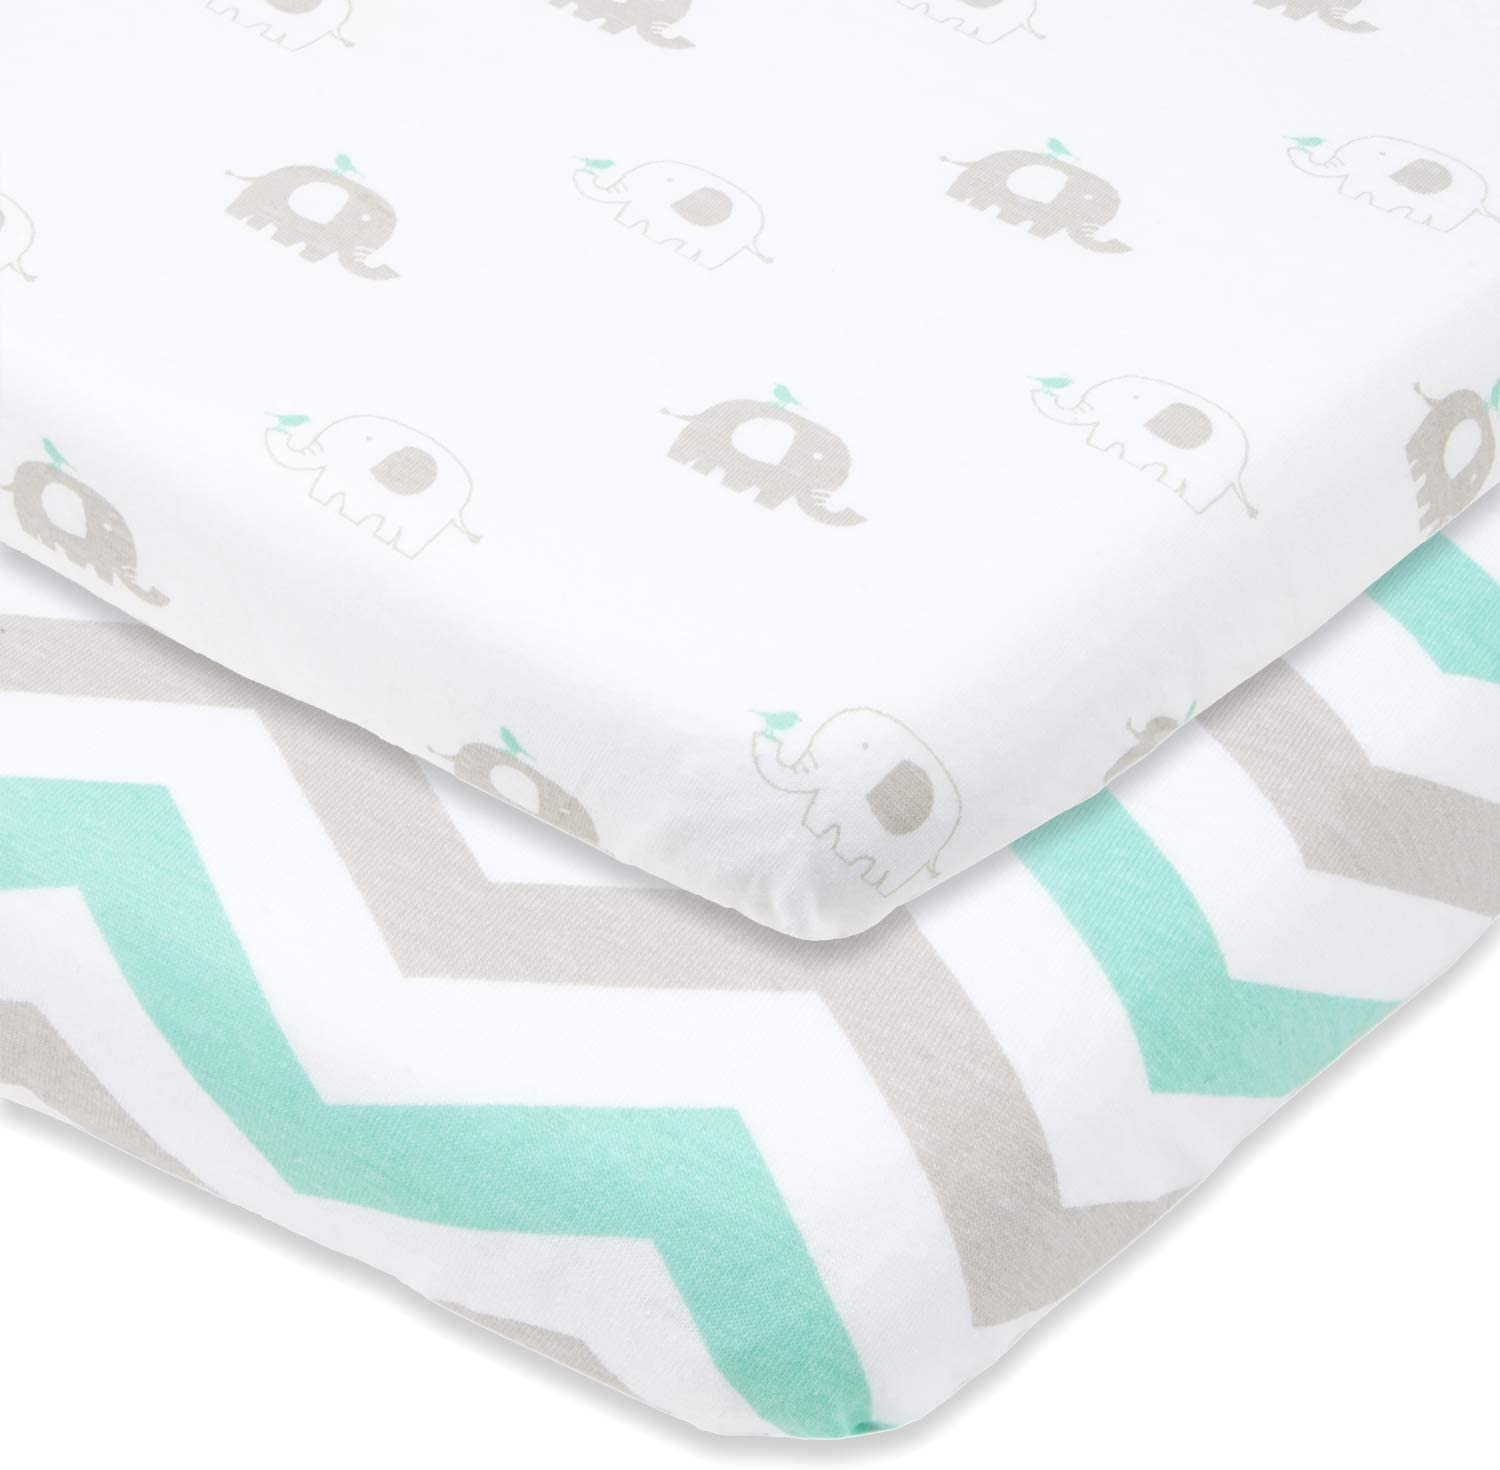 2 x Baby Crib Fitted Sheets to fit Chicco Next2Me Crib New 100/% Cotton